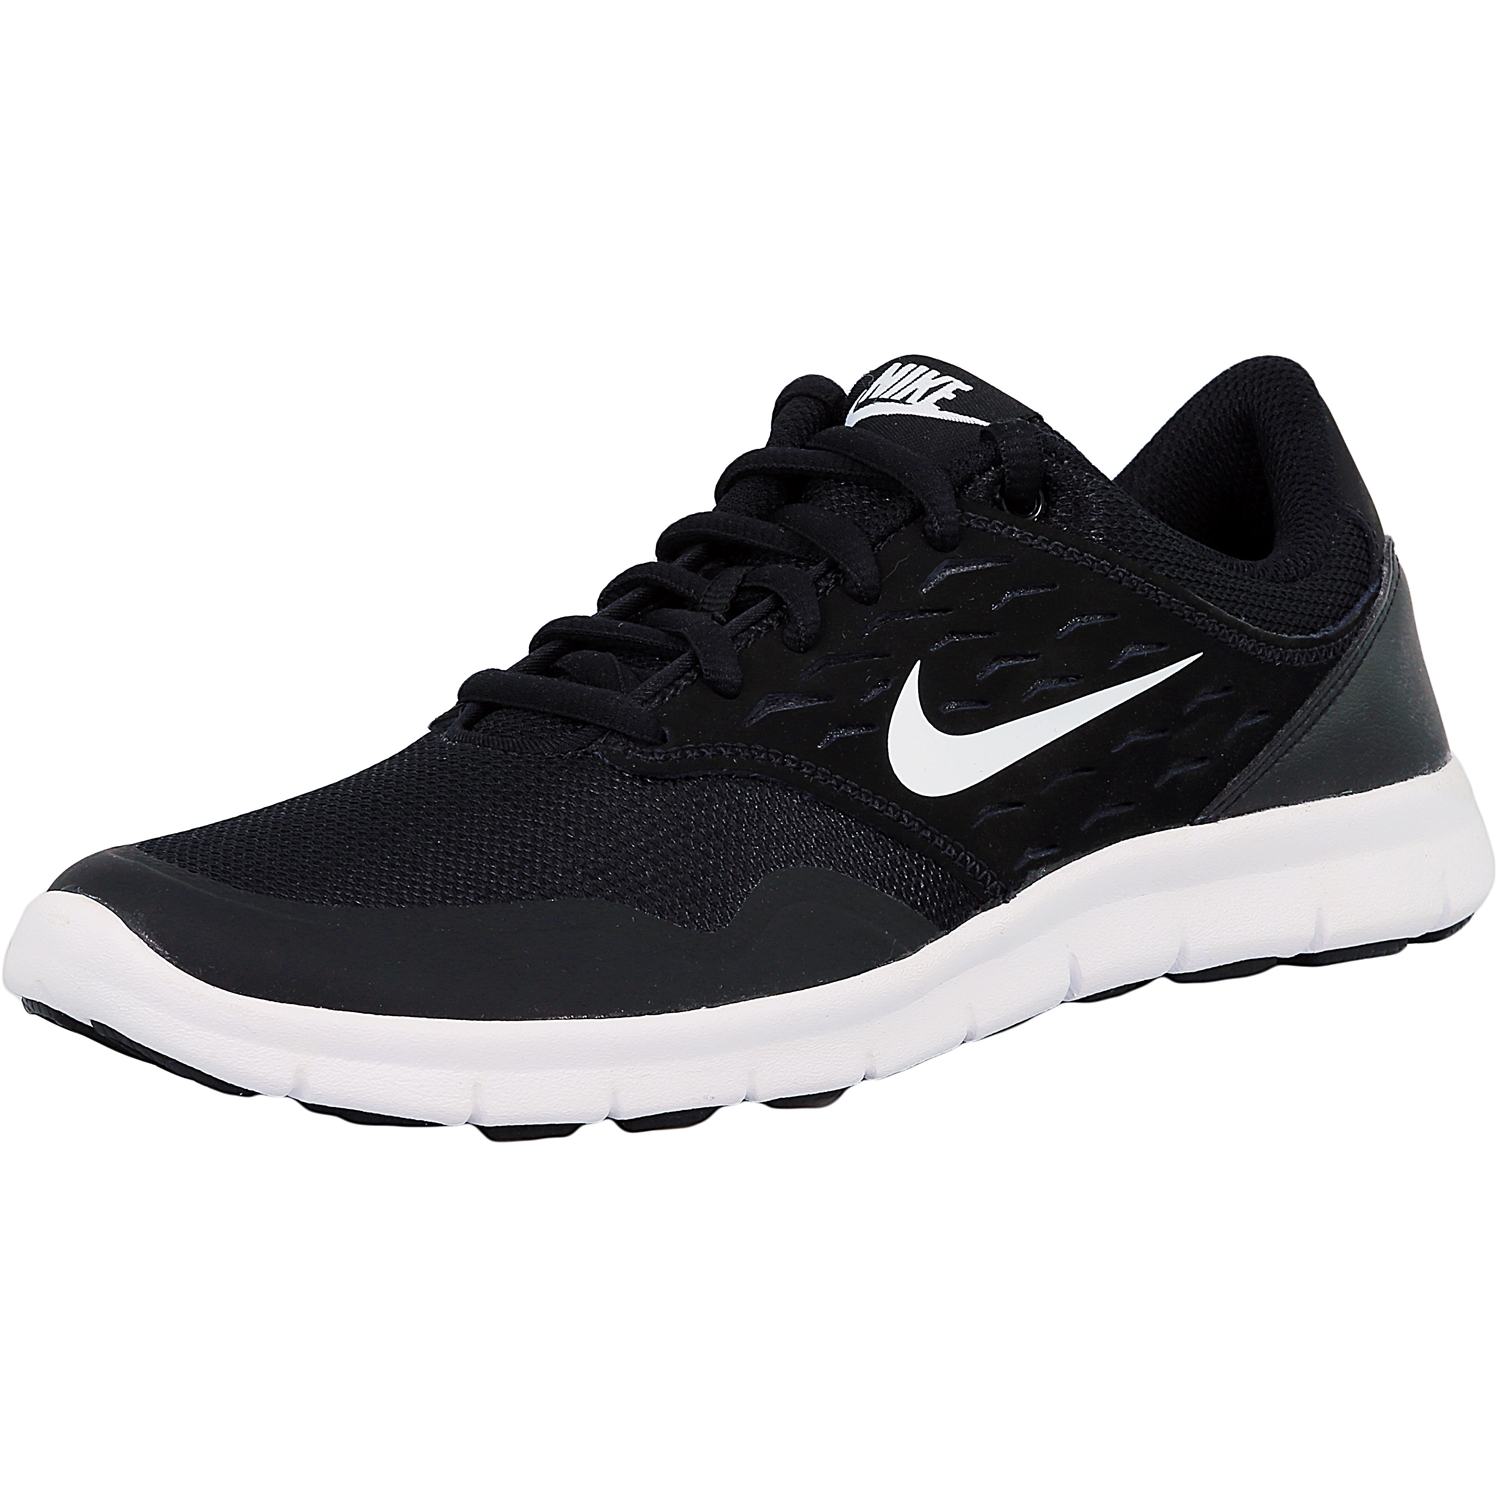 Nike Women's Orive Nm Black/White Ankle-High Running Shoe...